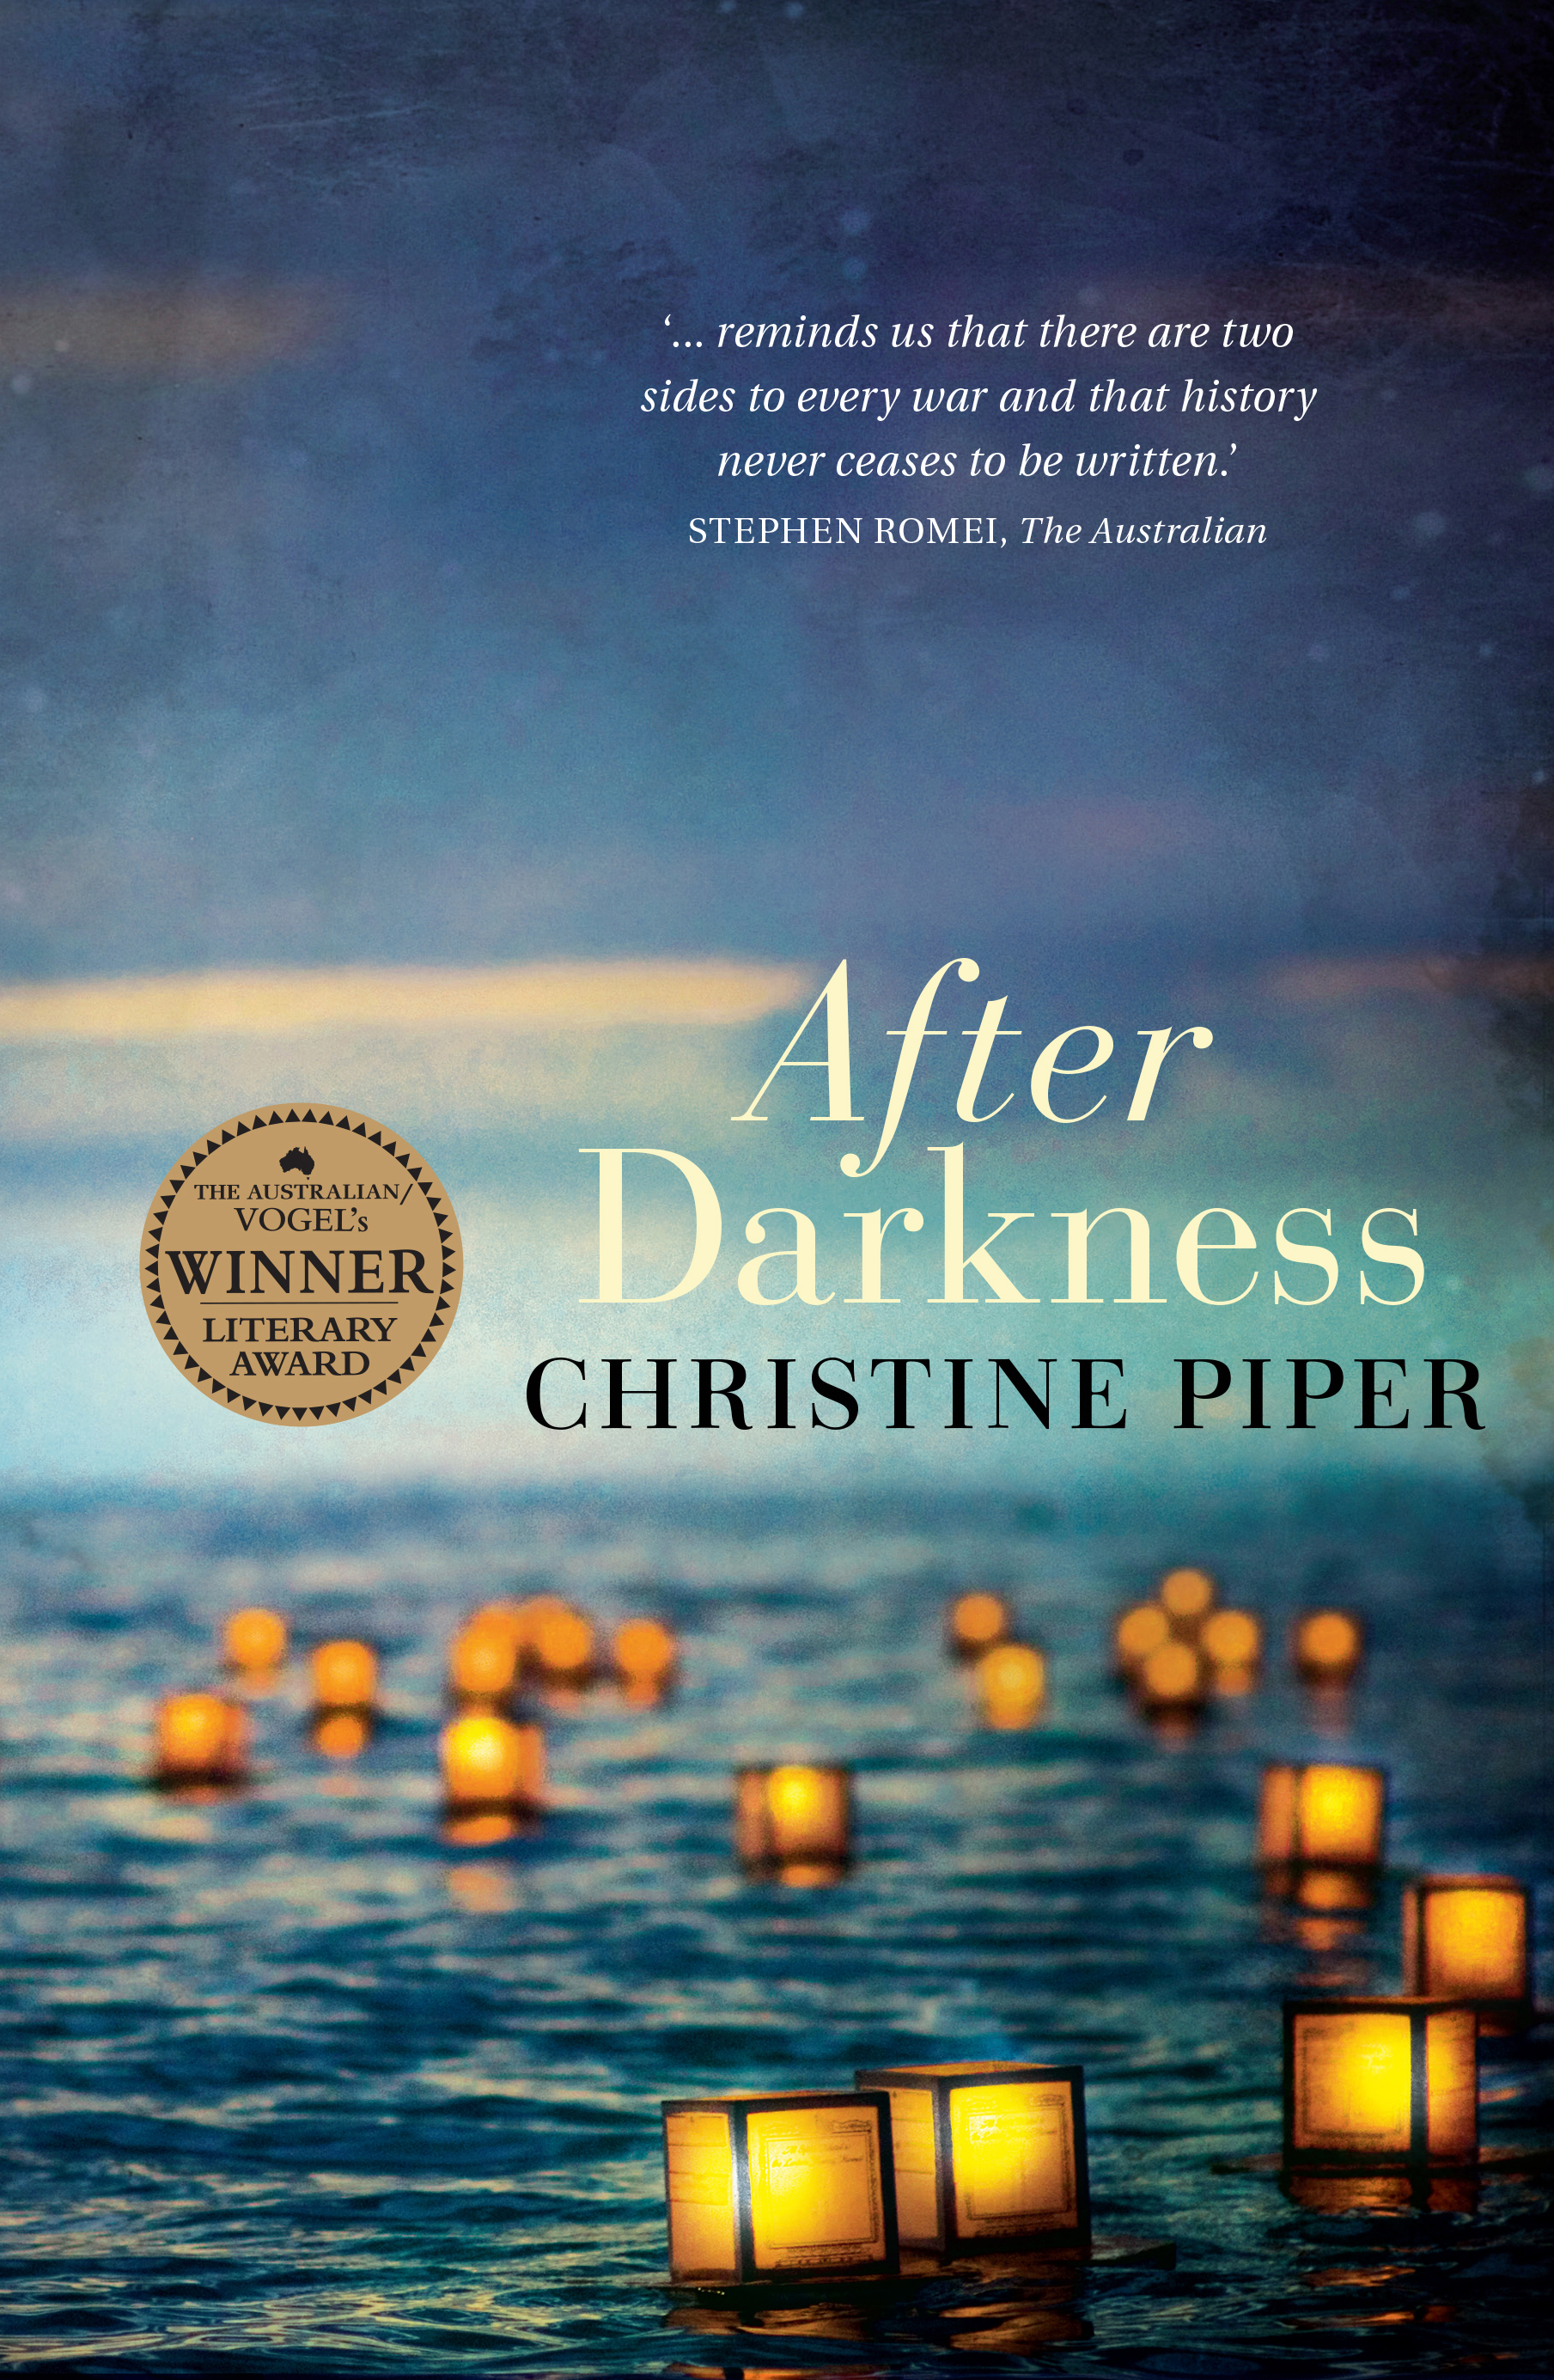 Cover Art for After Darkness, ISBN: 9781760113117